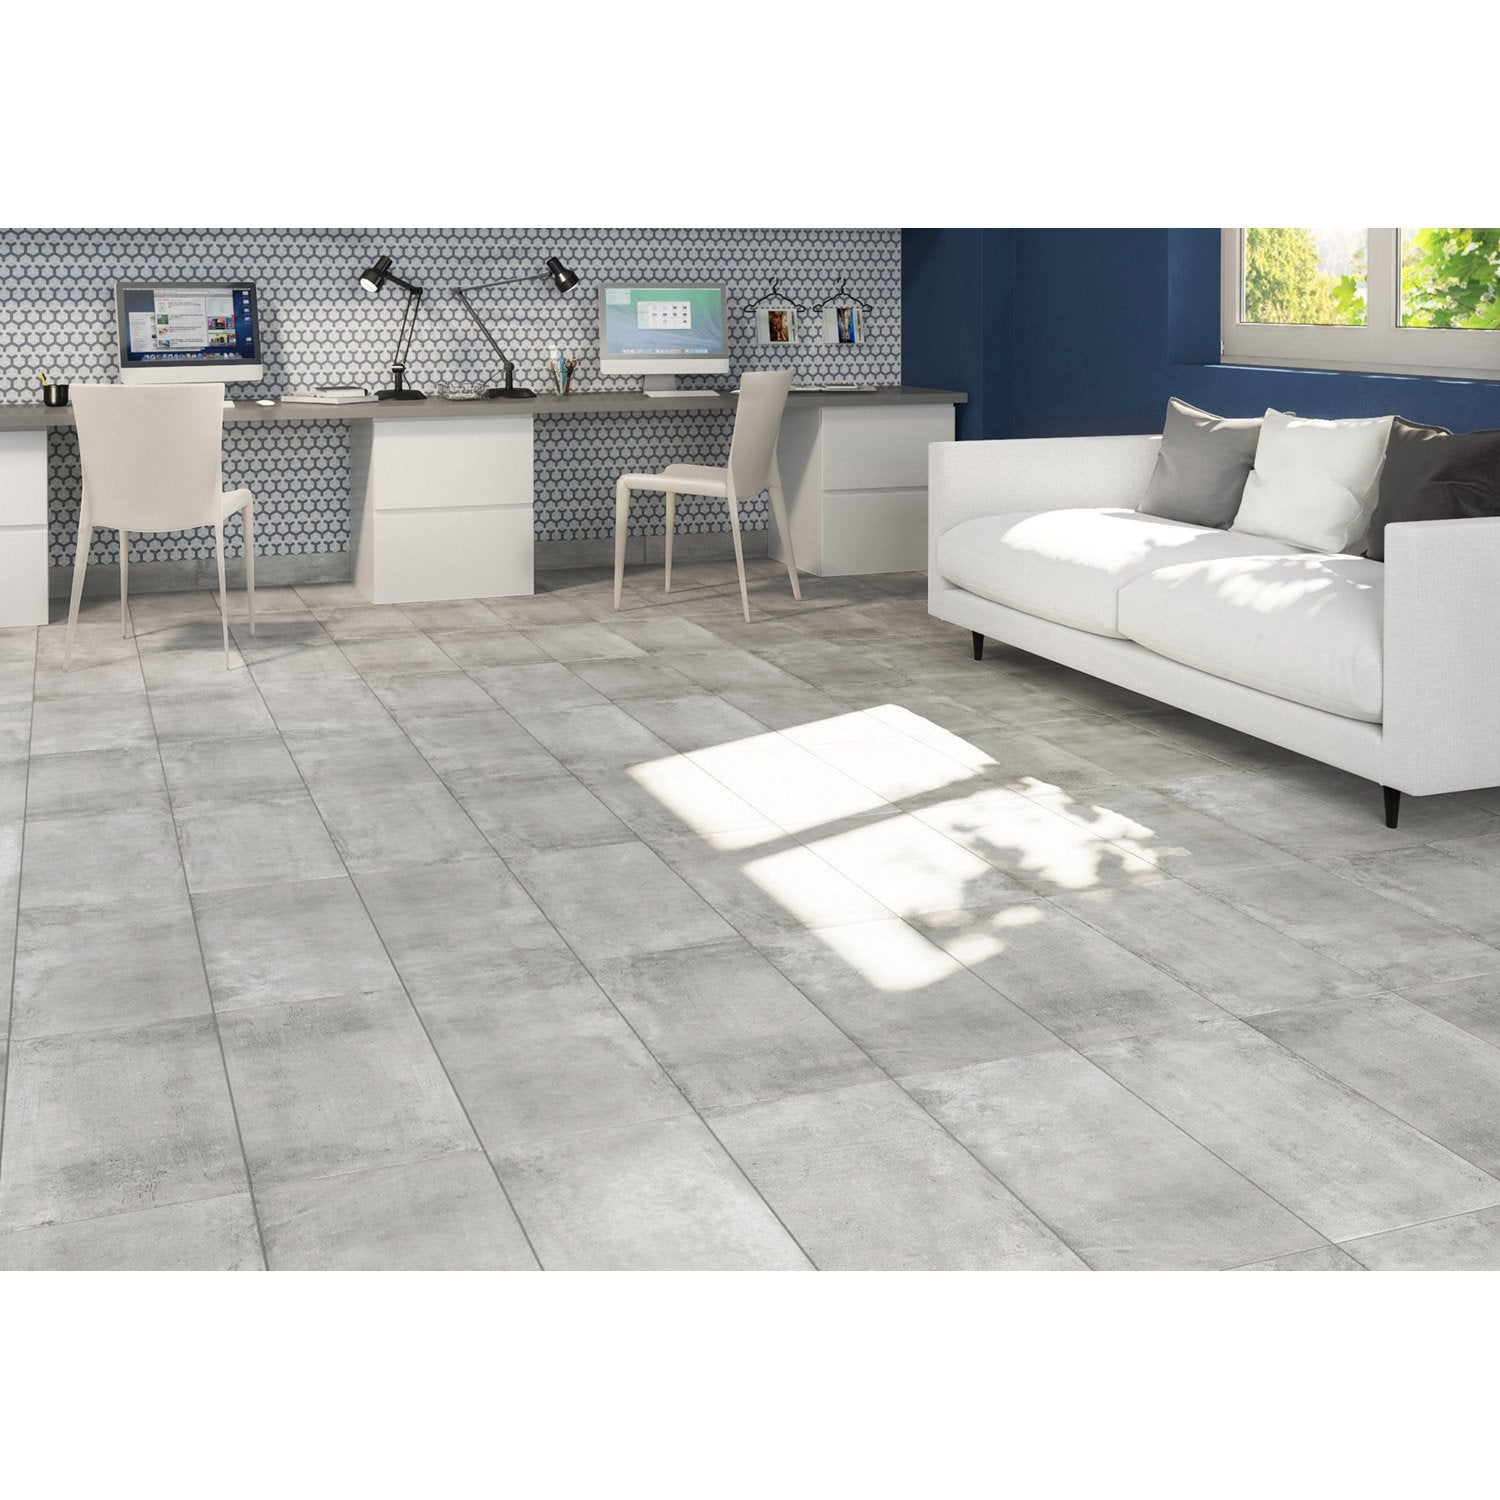 Latest carrelage sol et mur gris effet bton proton l x l for Carrelage sol salon